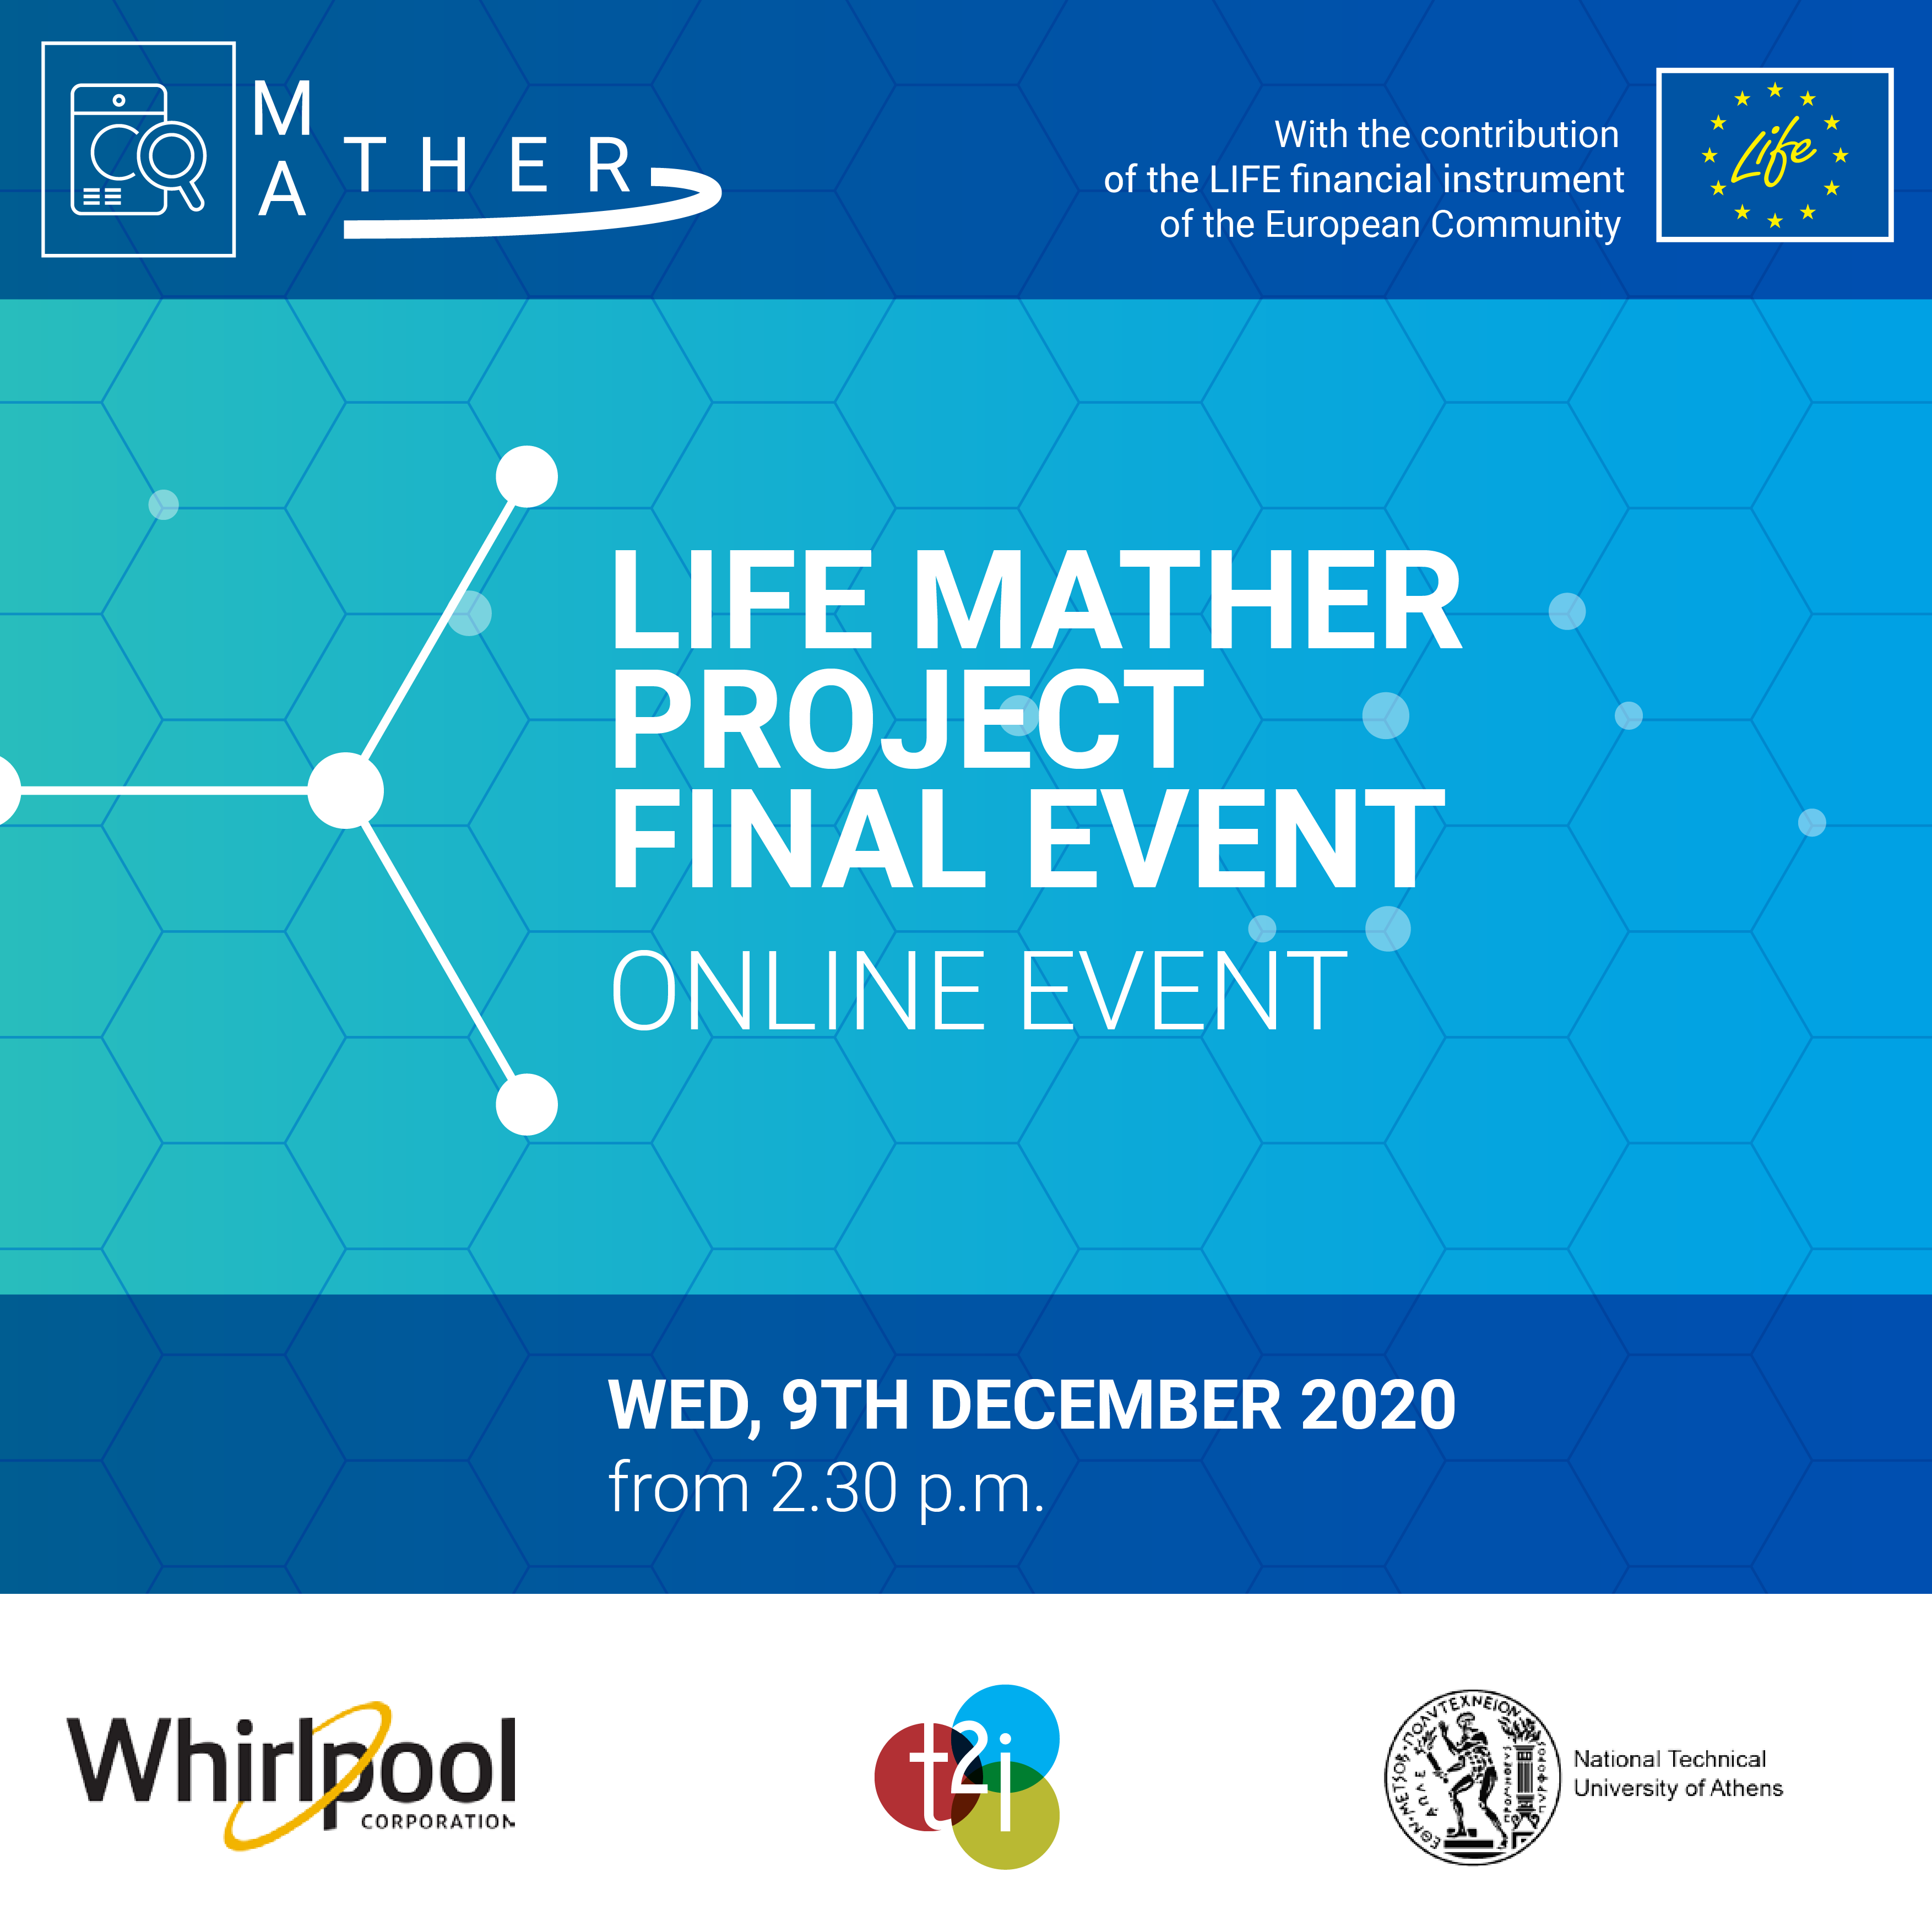 Manufacturing and sustainability: the Life MATHER project's final event